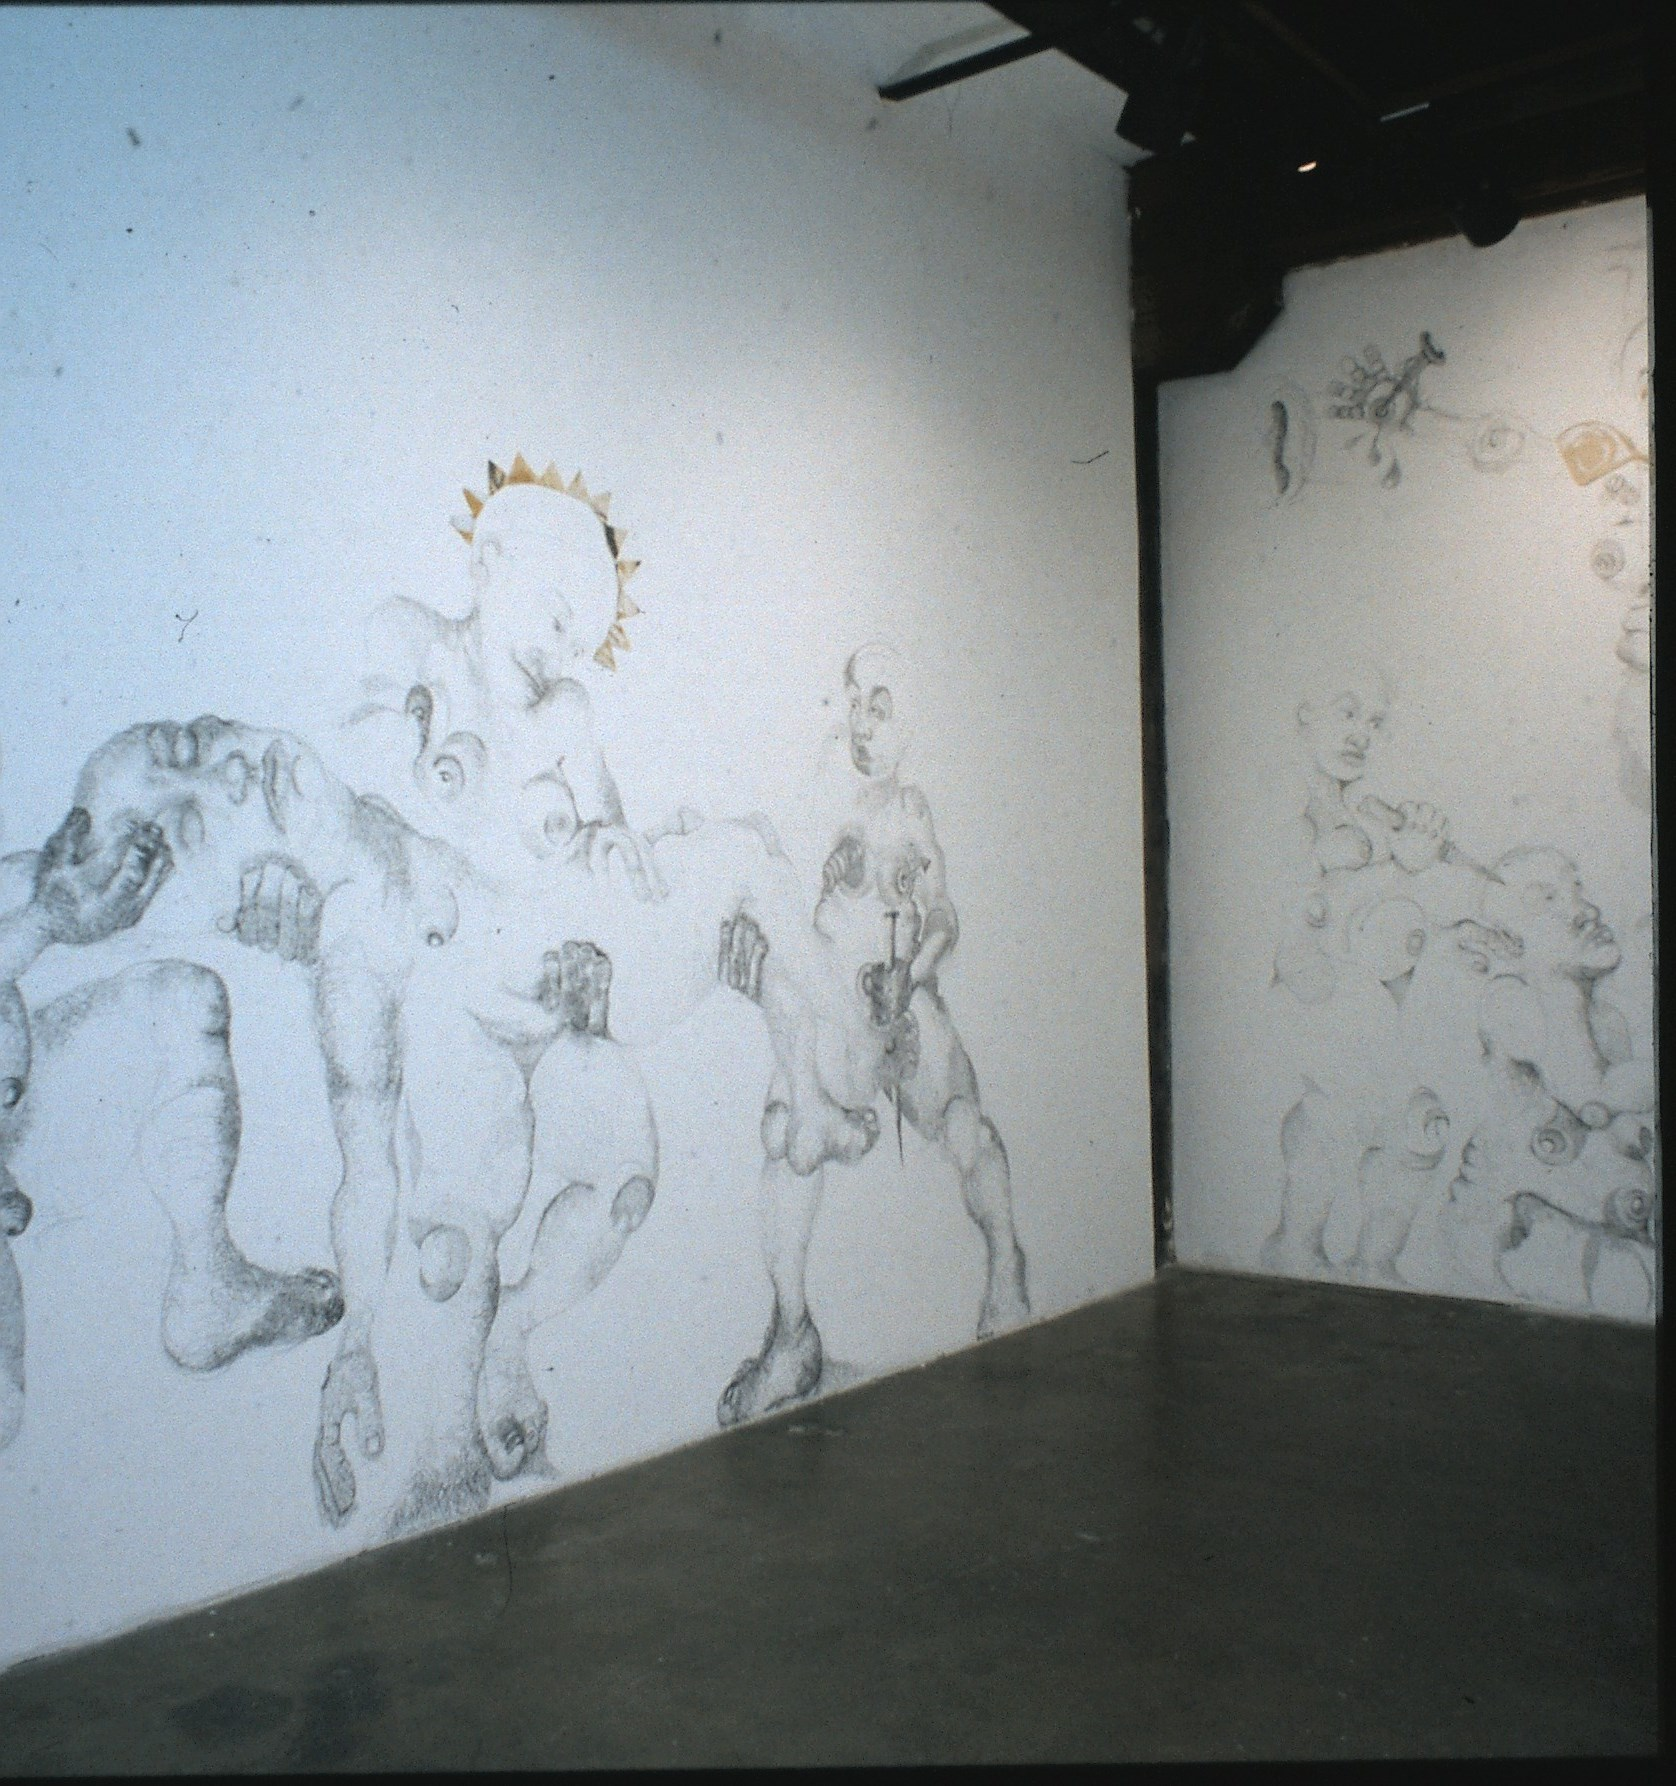 Installation image at 500X Gallery